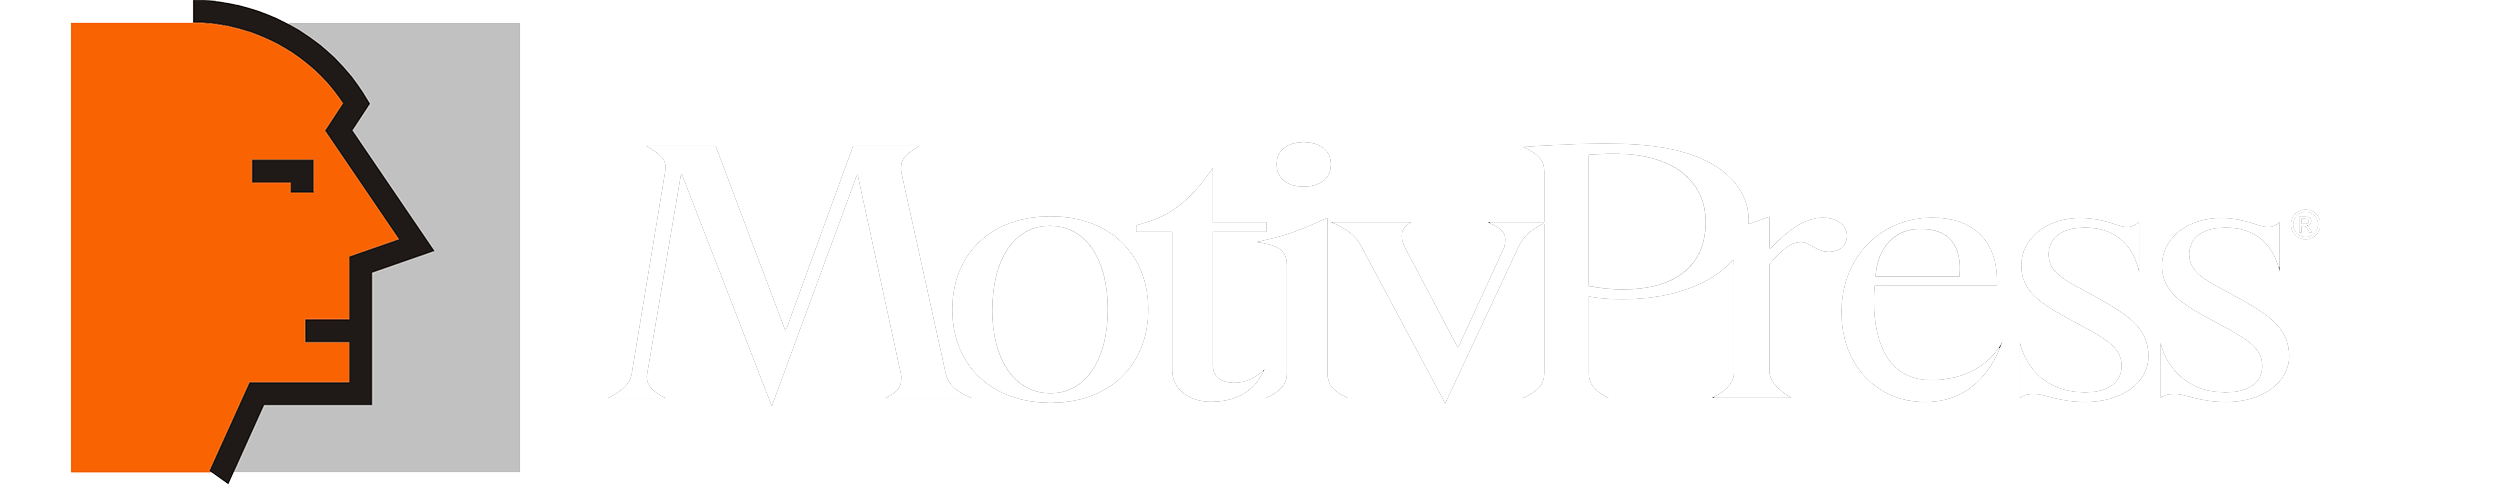 logo firmy MOTIV PRESS